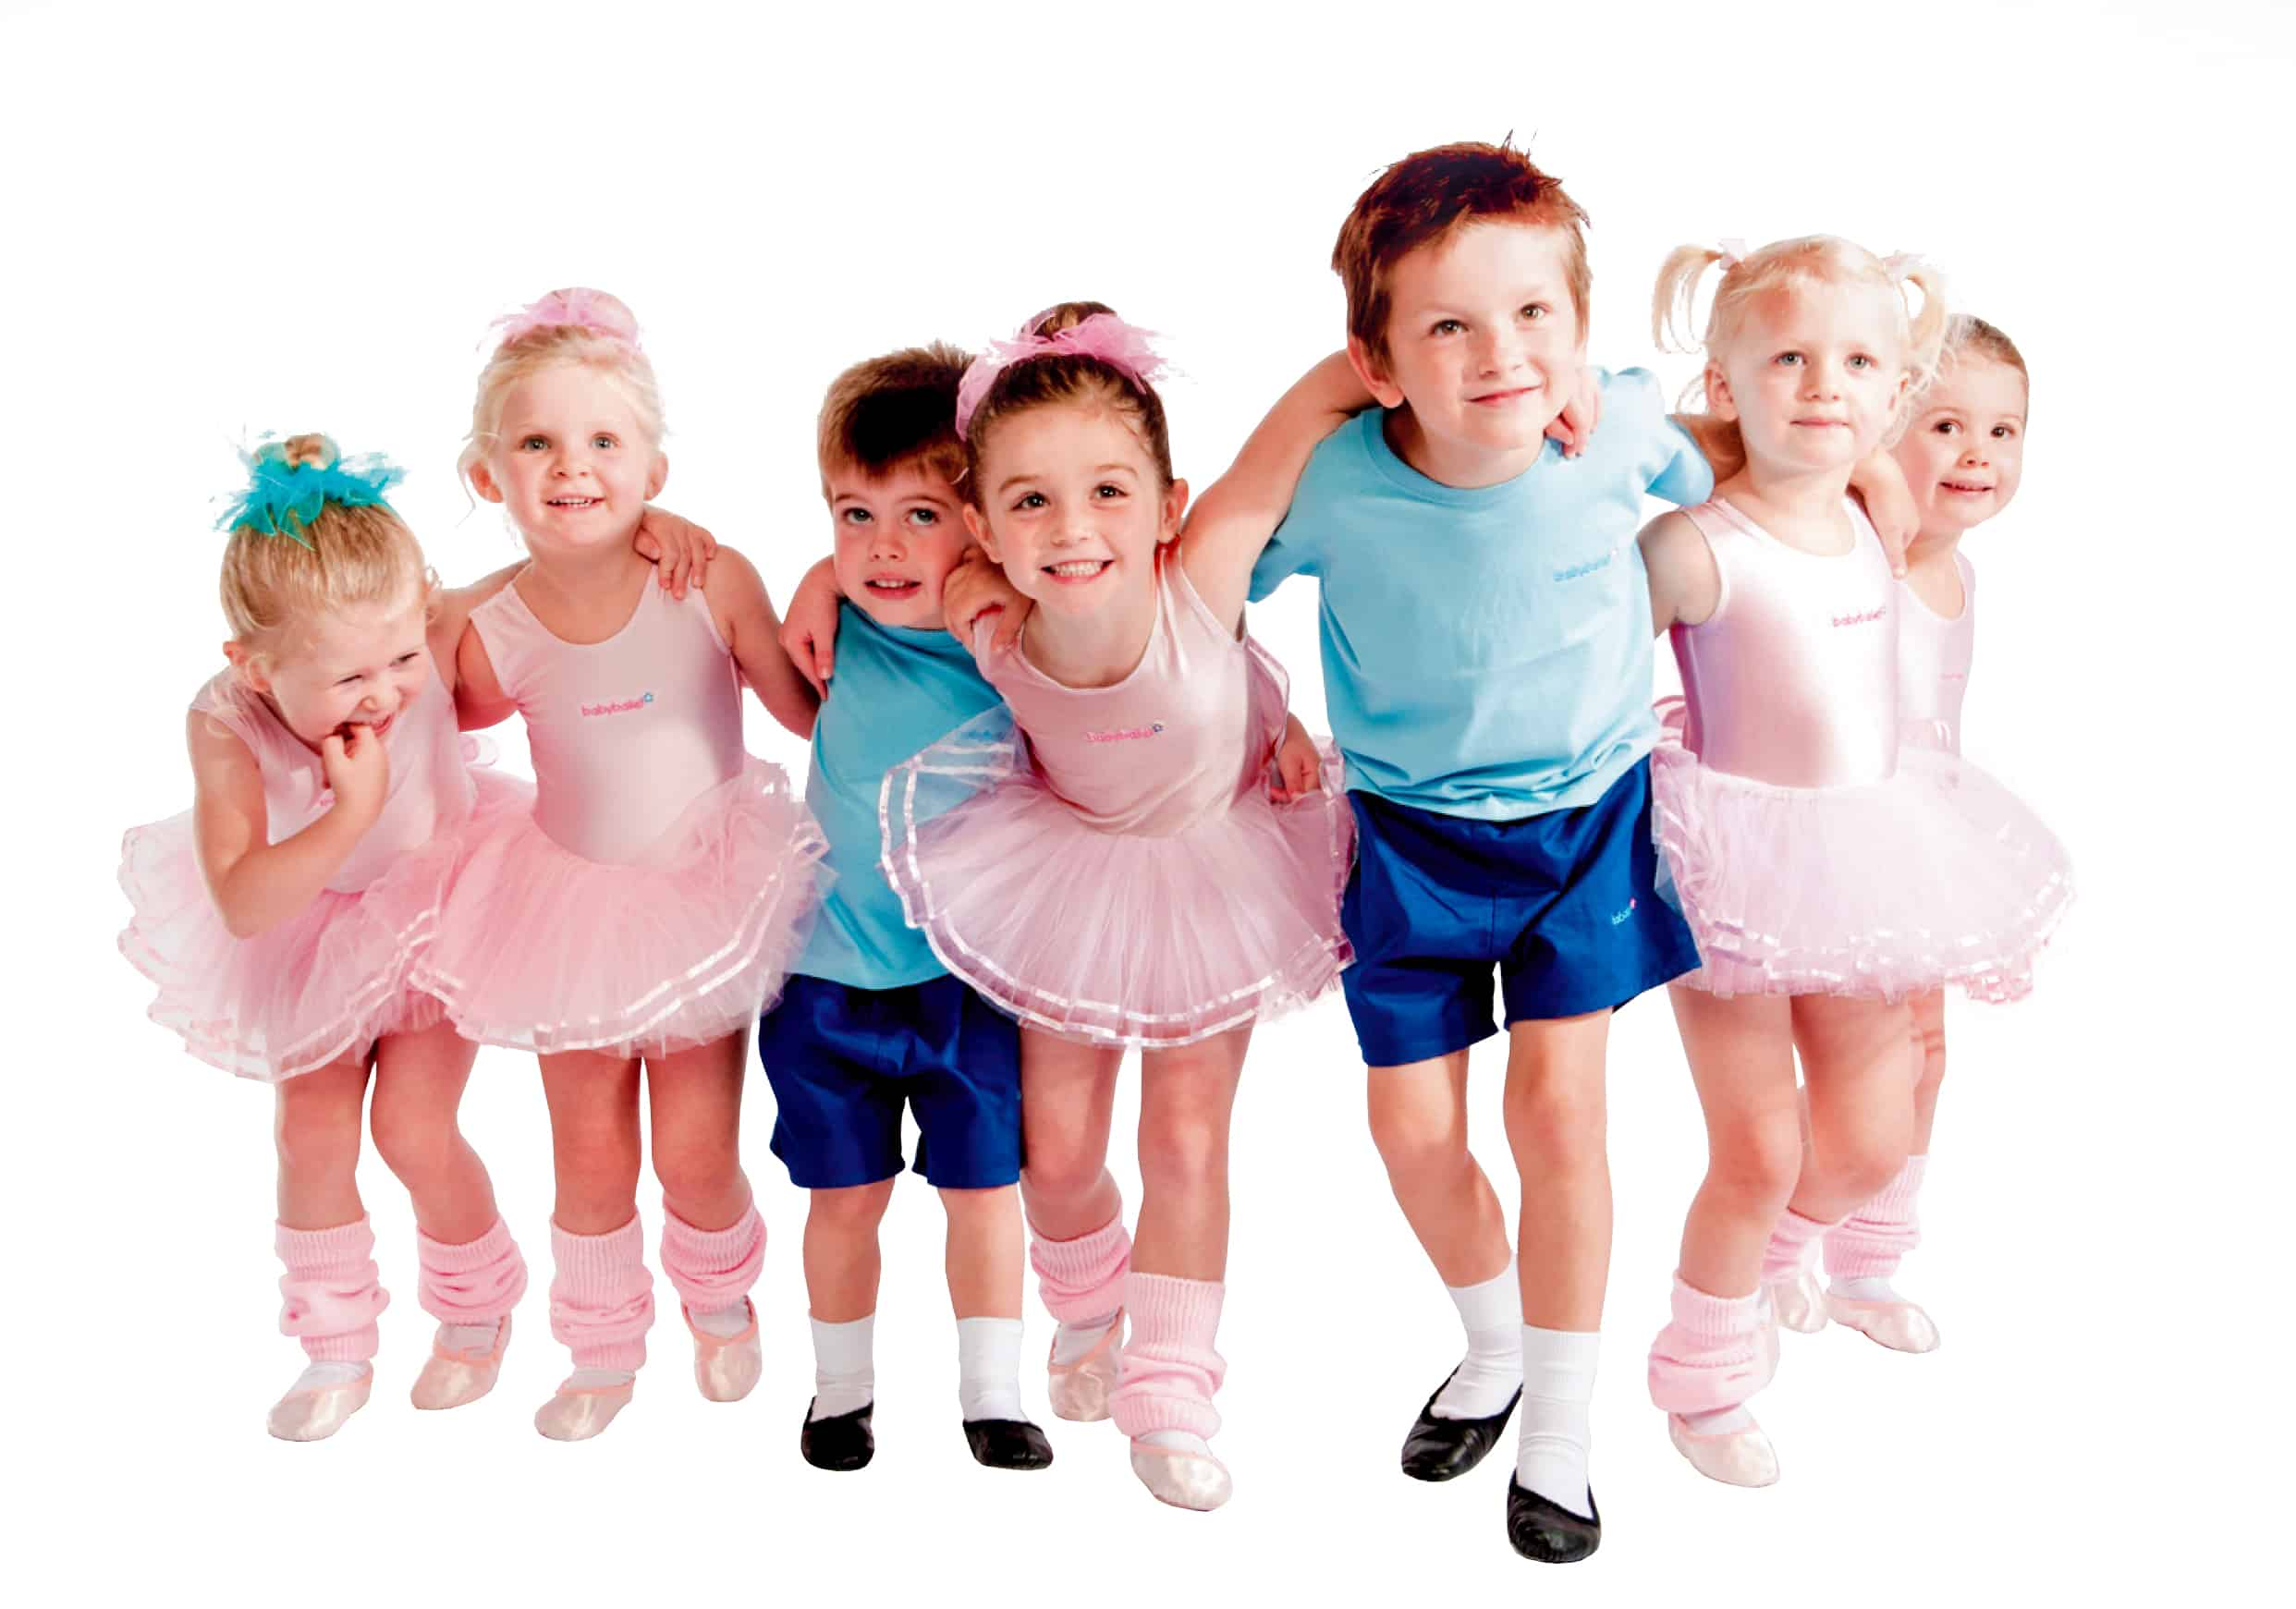 Babyballet Lincoln Classes are for children from 6 months to 6 years old. These contemporary dance classes are the perfect activity for tots, toddlers and pre-schoolers to exercise, make friends and grow in confidence. Miss Emma is a franchisee running her own dance school and ballet classes for kids on behalf of the international babyballet brand. Kids, boys and girls love to learn to dance at babyballet in Lincoln and surrounding areas.